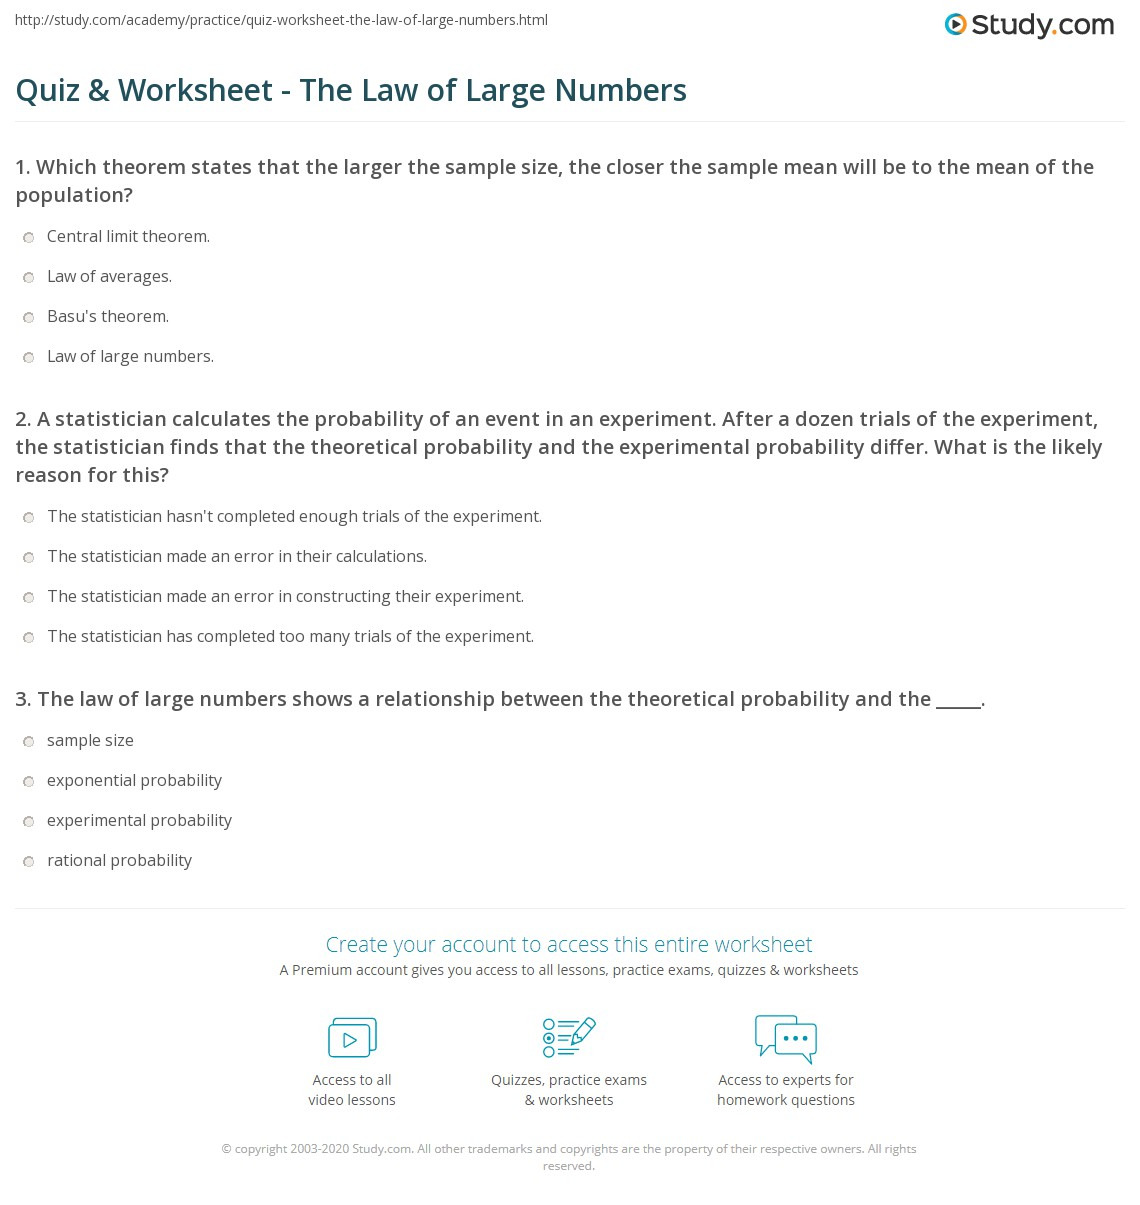 worksheet Theoretical Probability Worksheet quiz worksheet the law of large numbers study com after a dozen trials experiment statistician finds that theoretical probability and experimental differ